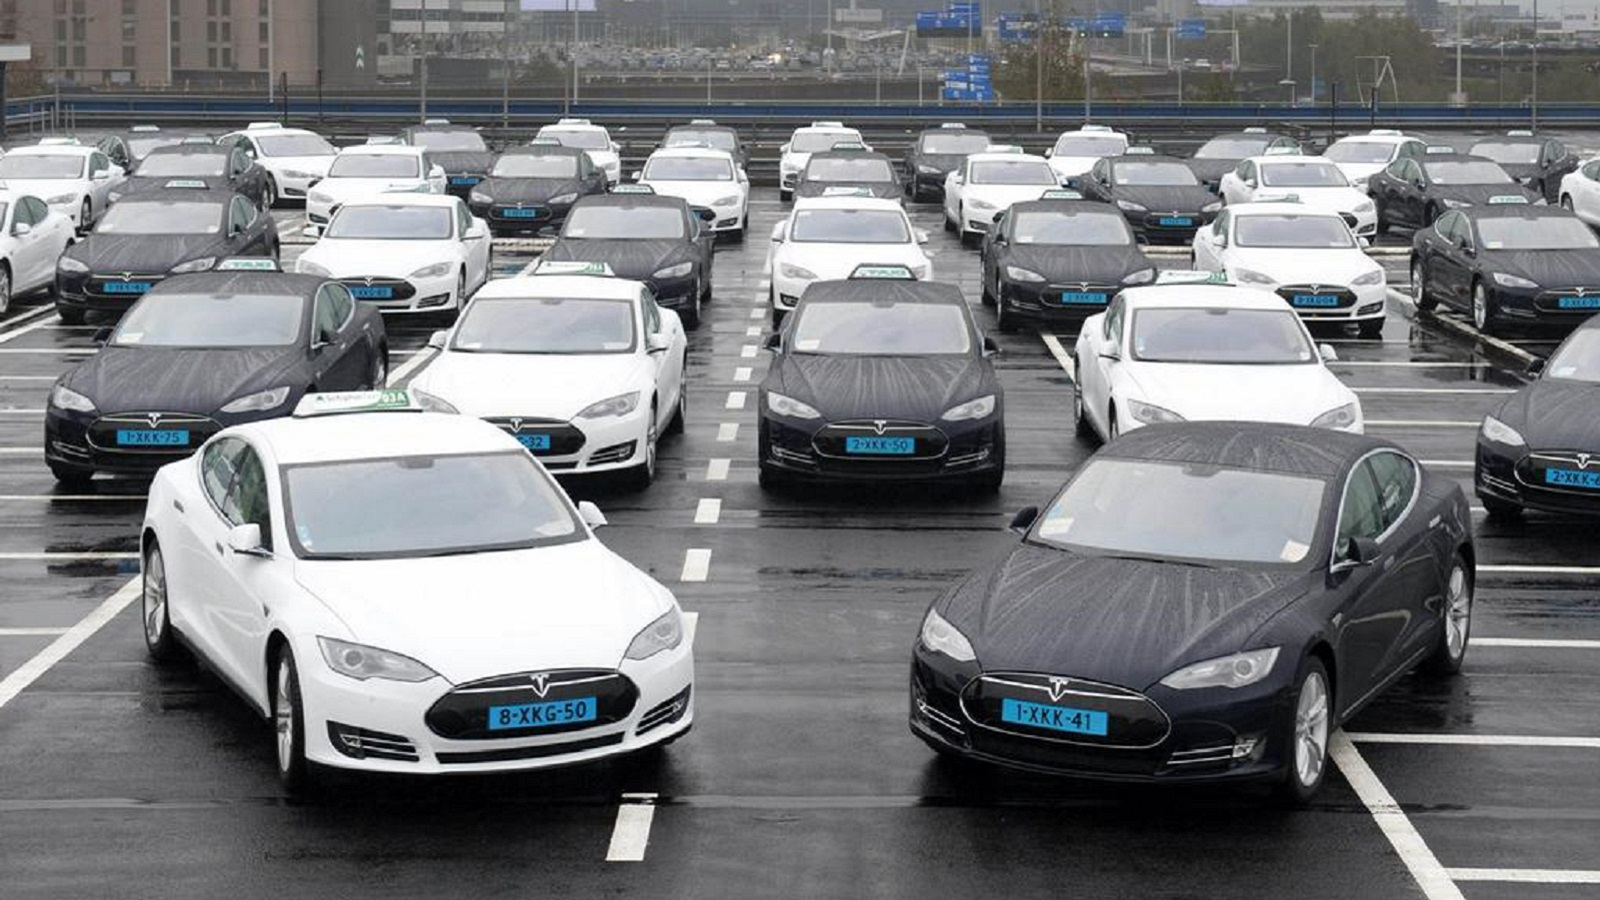 Seven reasons why Tesla China has a stockpile of 2,300 unsold cars